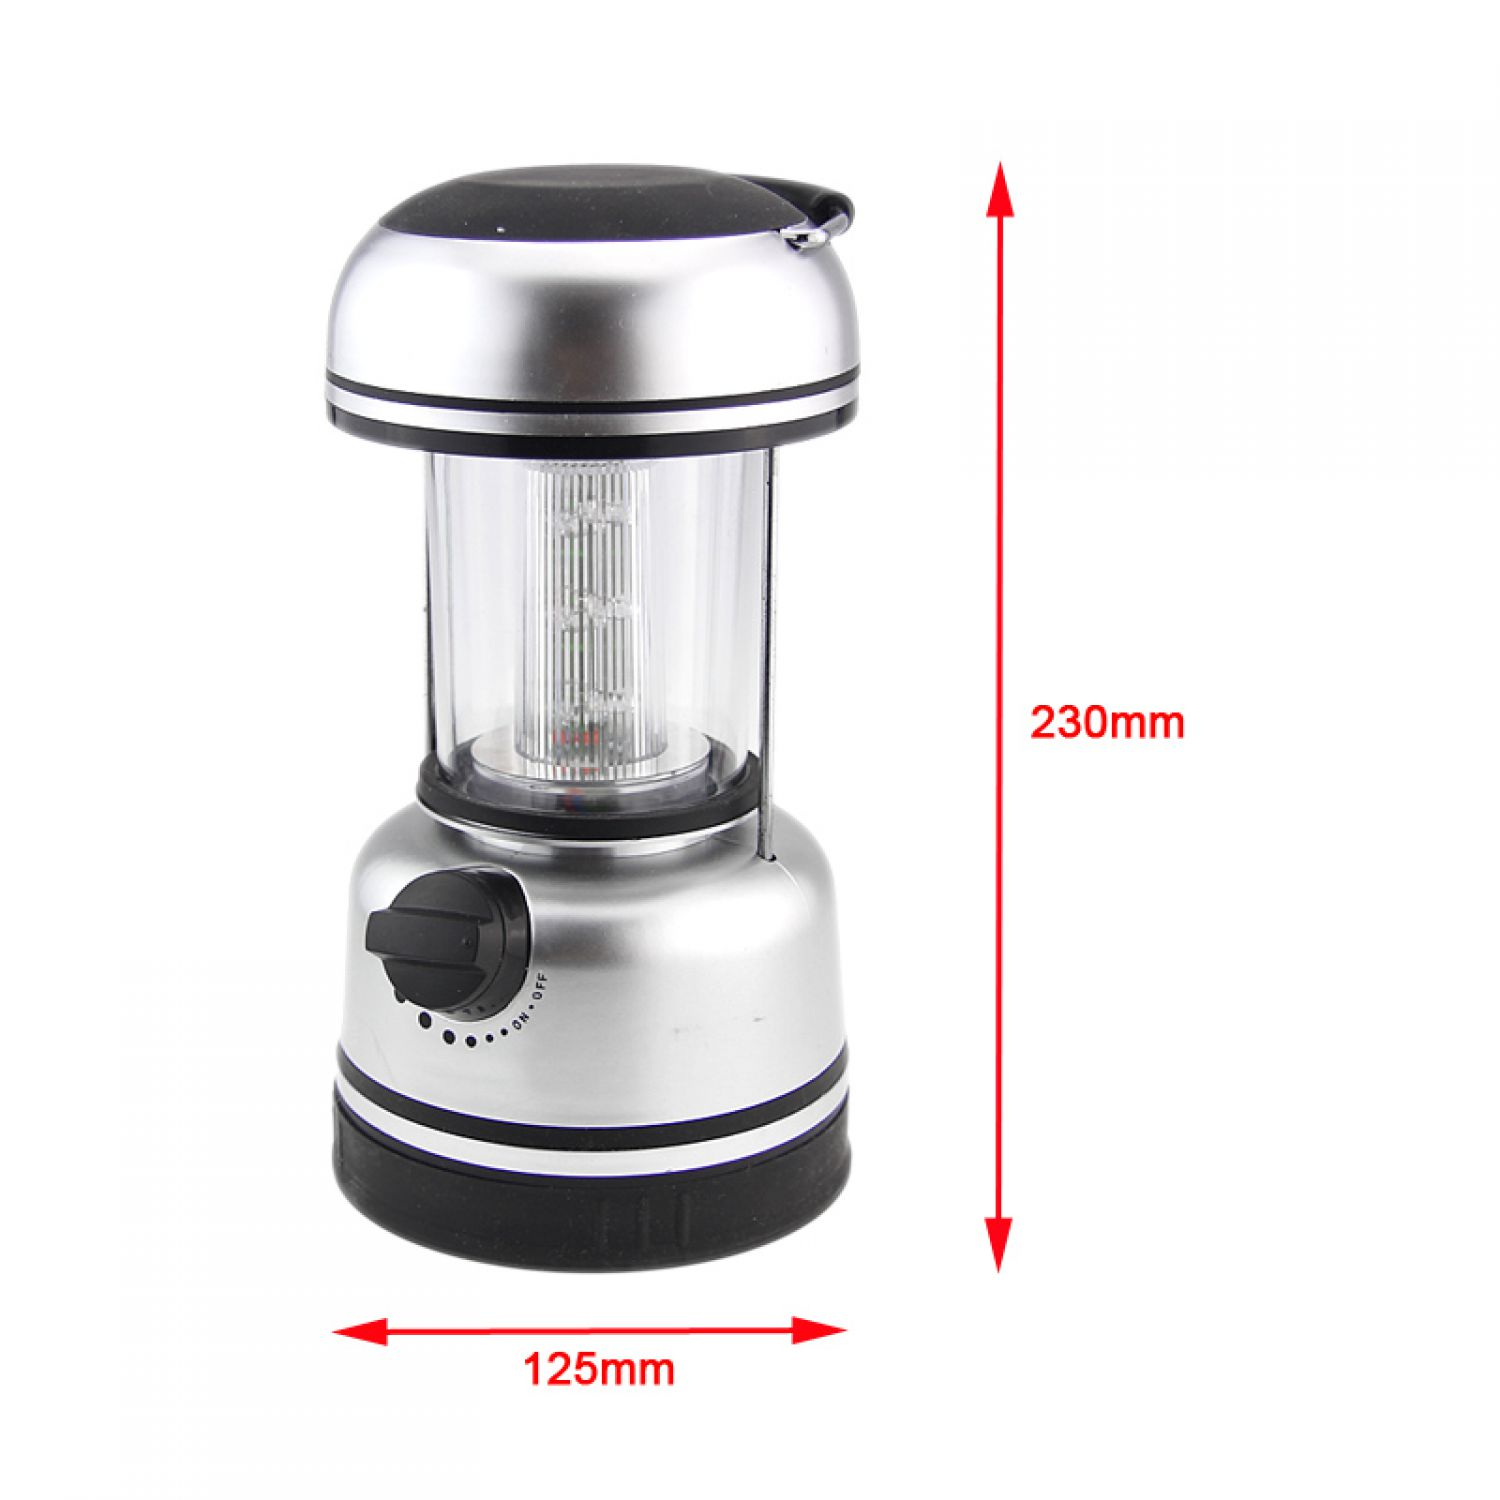 led lampe batterie de camping b ware lanterne tente 230v chargeur voiture ebay. Black Bedroom Furniture Sets. Home Design Ideas